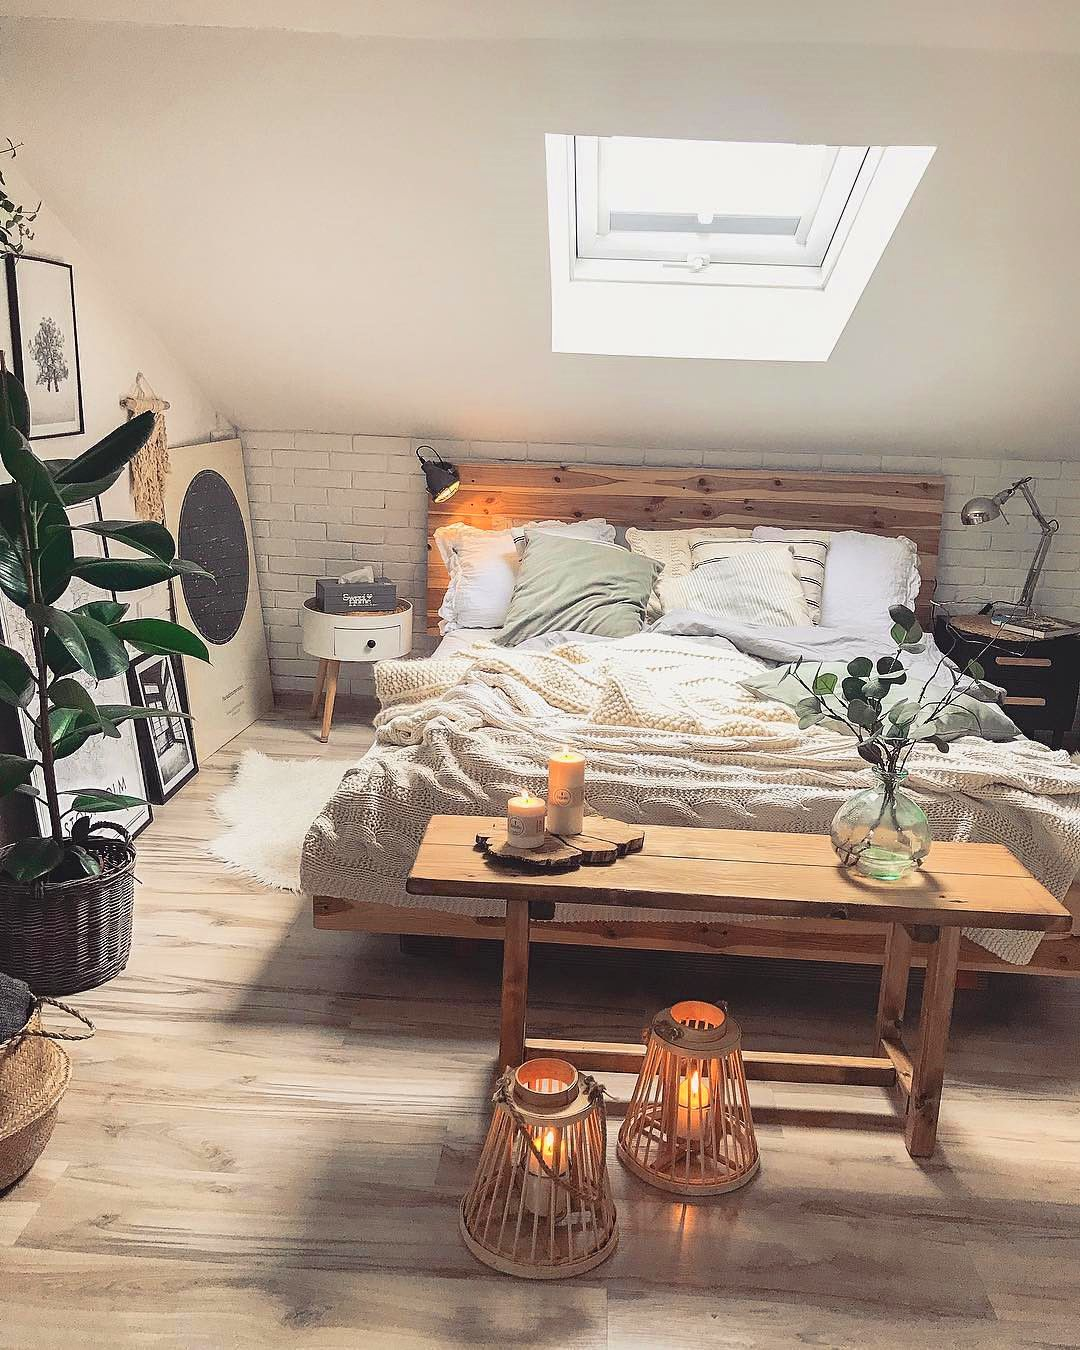 50 Best Bedroom Decor And Design Ideas With Farmhouse Style